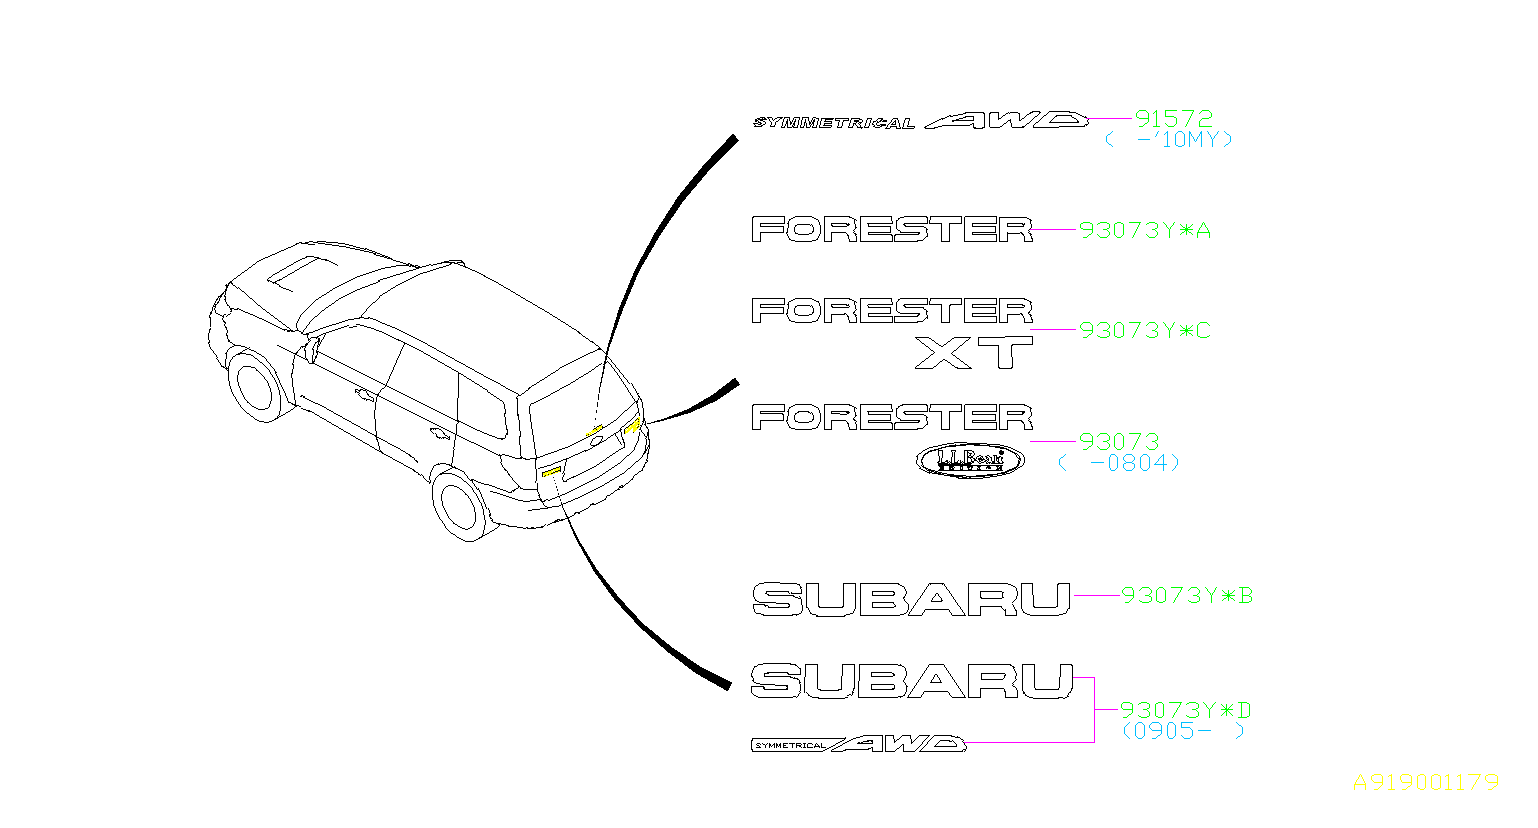 Subaru Forester Label Rear Window Mark Letter Body